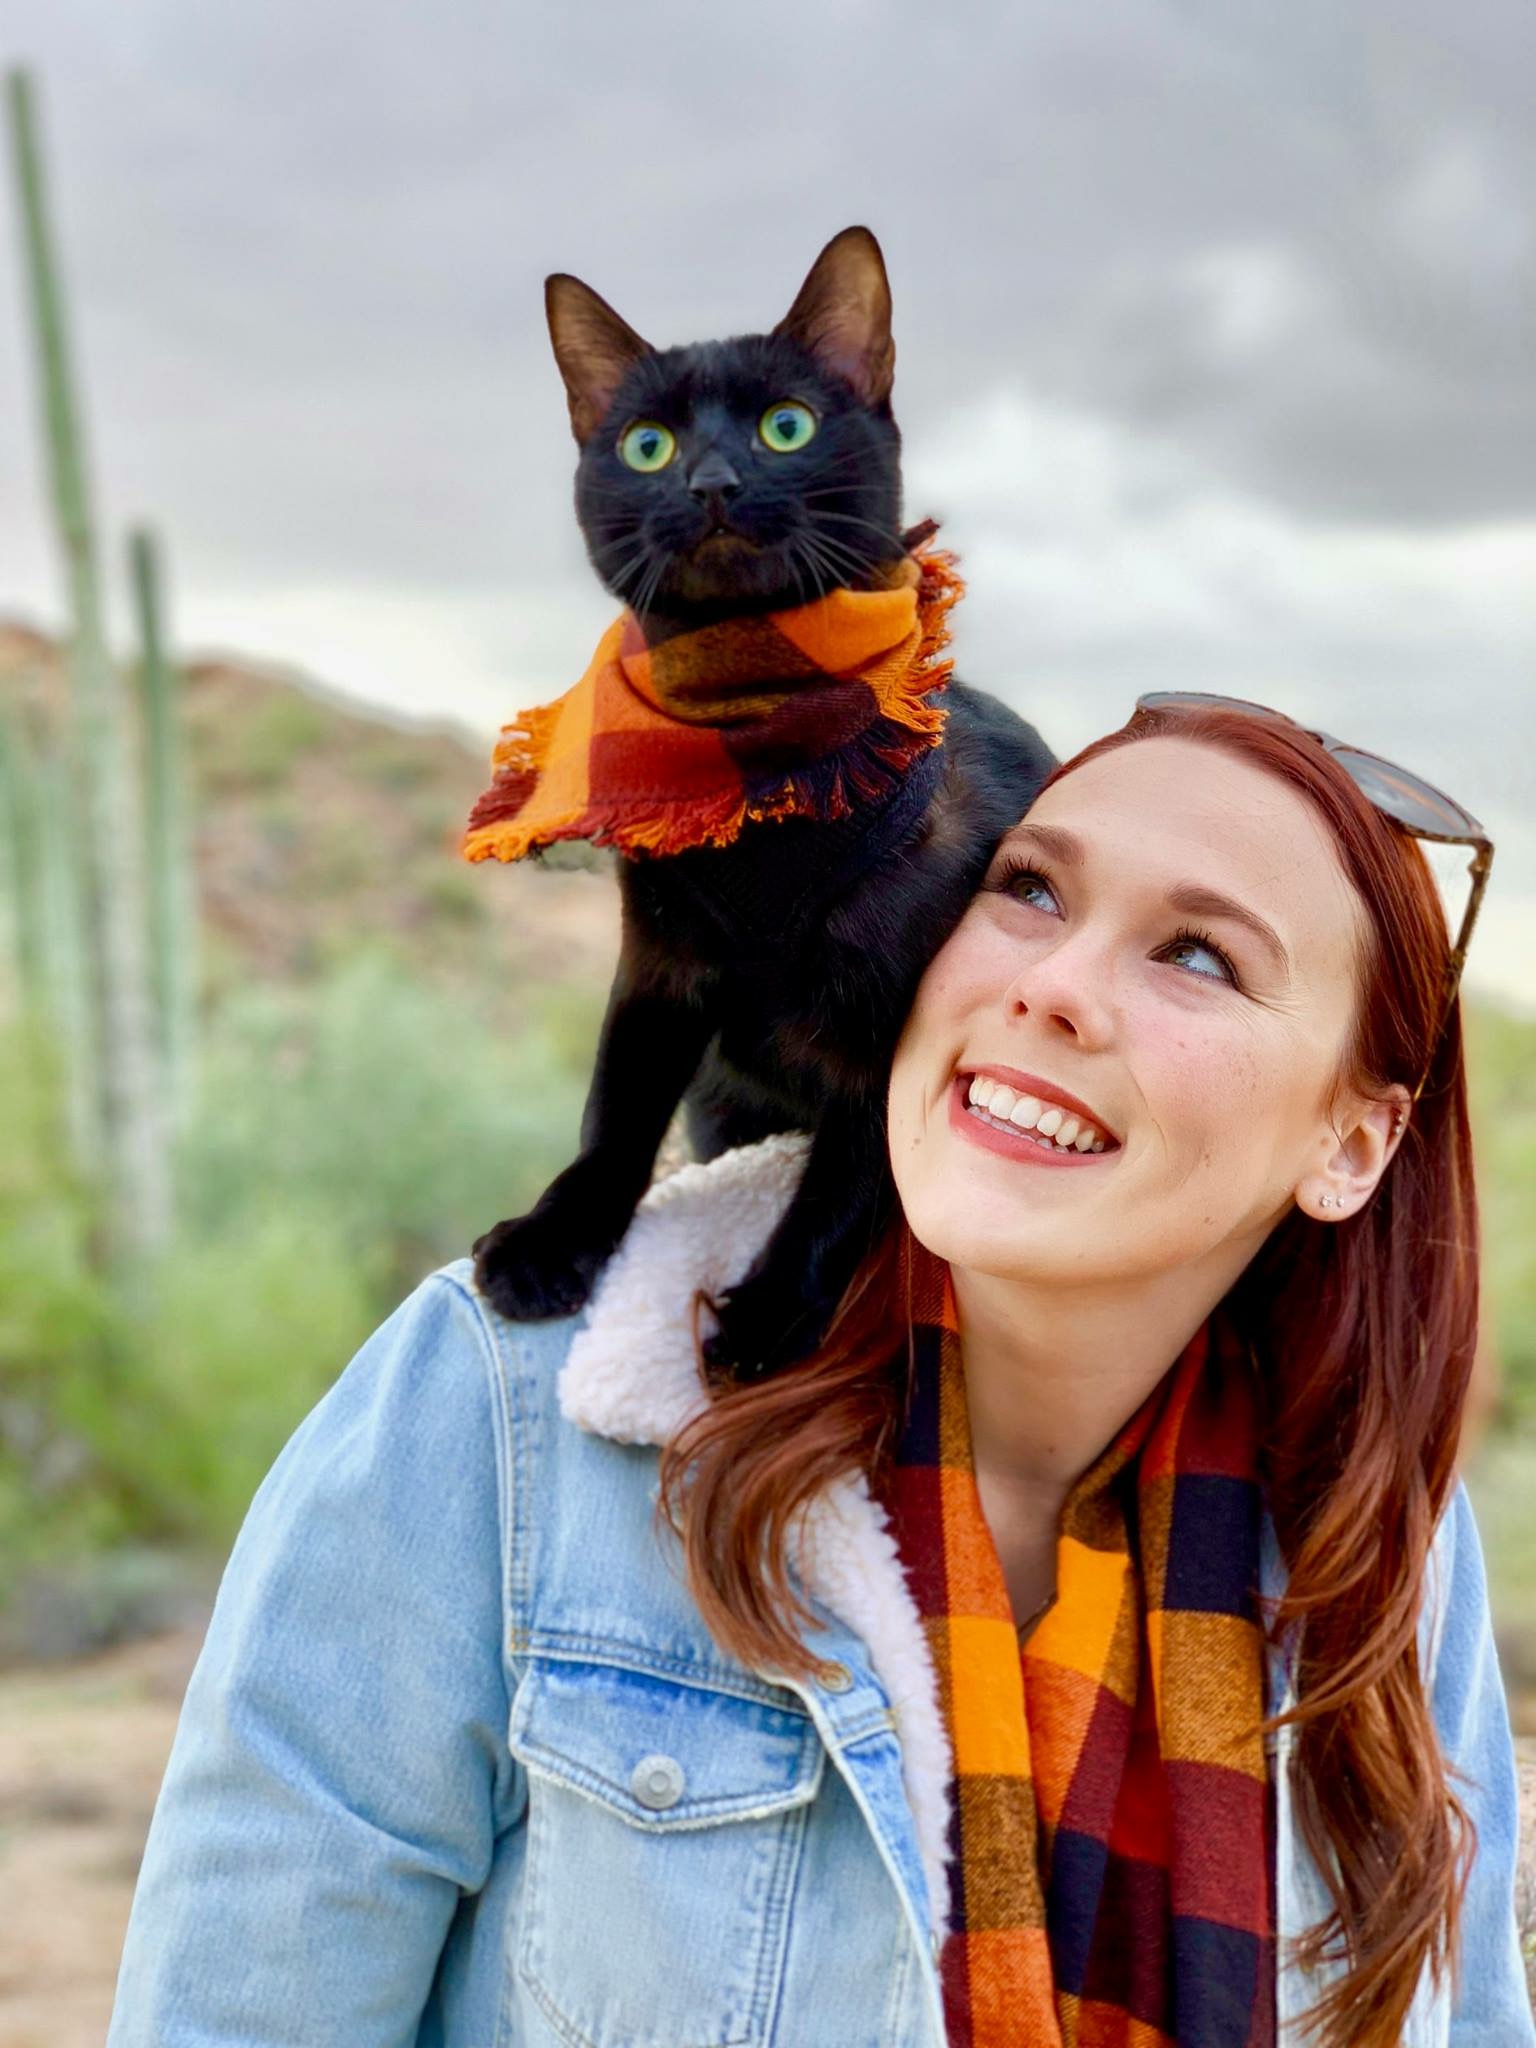 Cash rides on owner's shoulder while they wear matching scarves